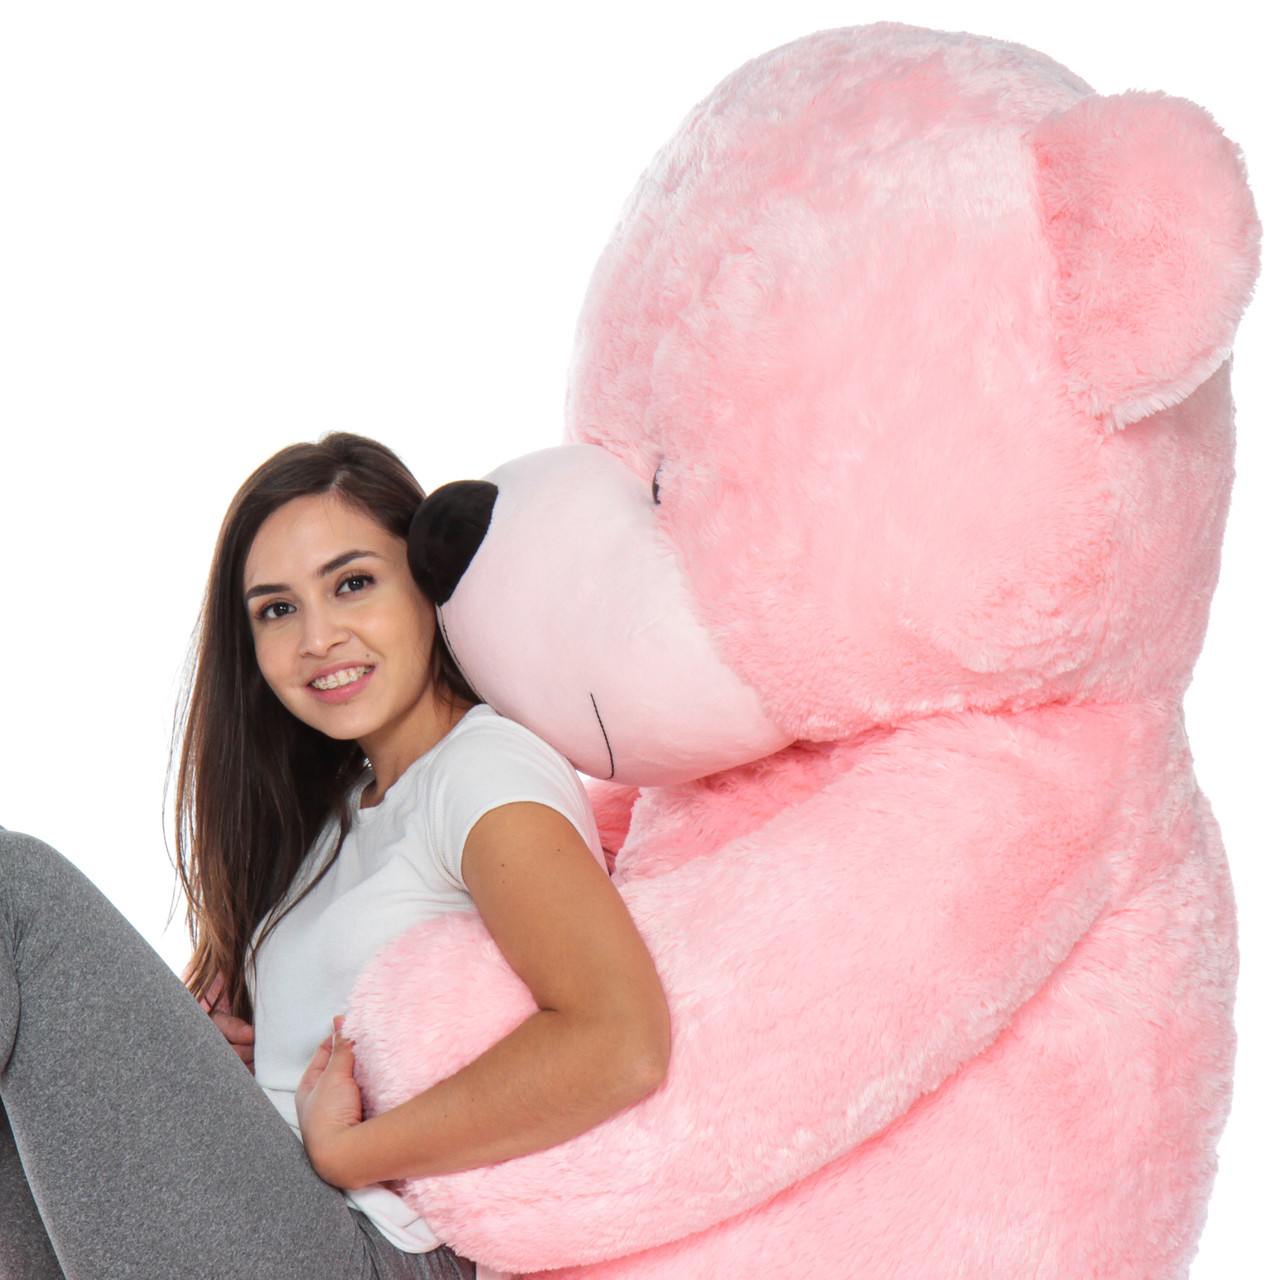 Super Soft 7 Foot Giant Teddy Brand Biggest Teddy Bear in Pink